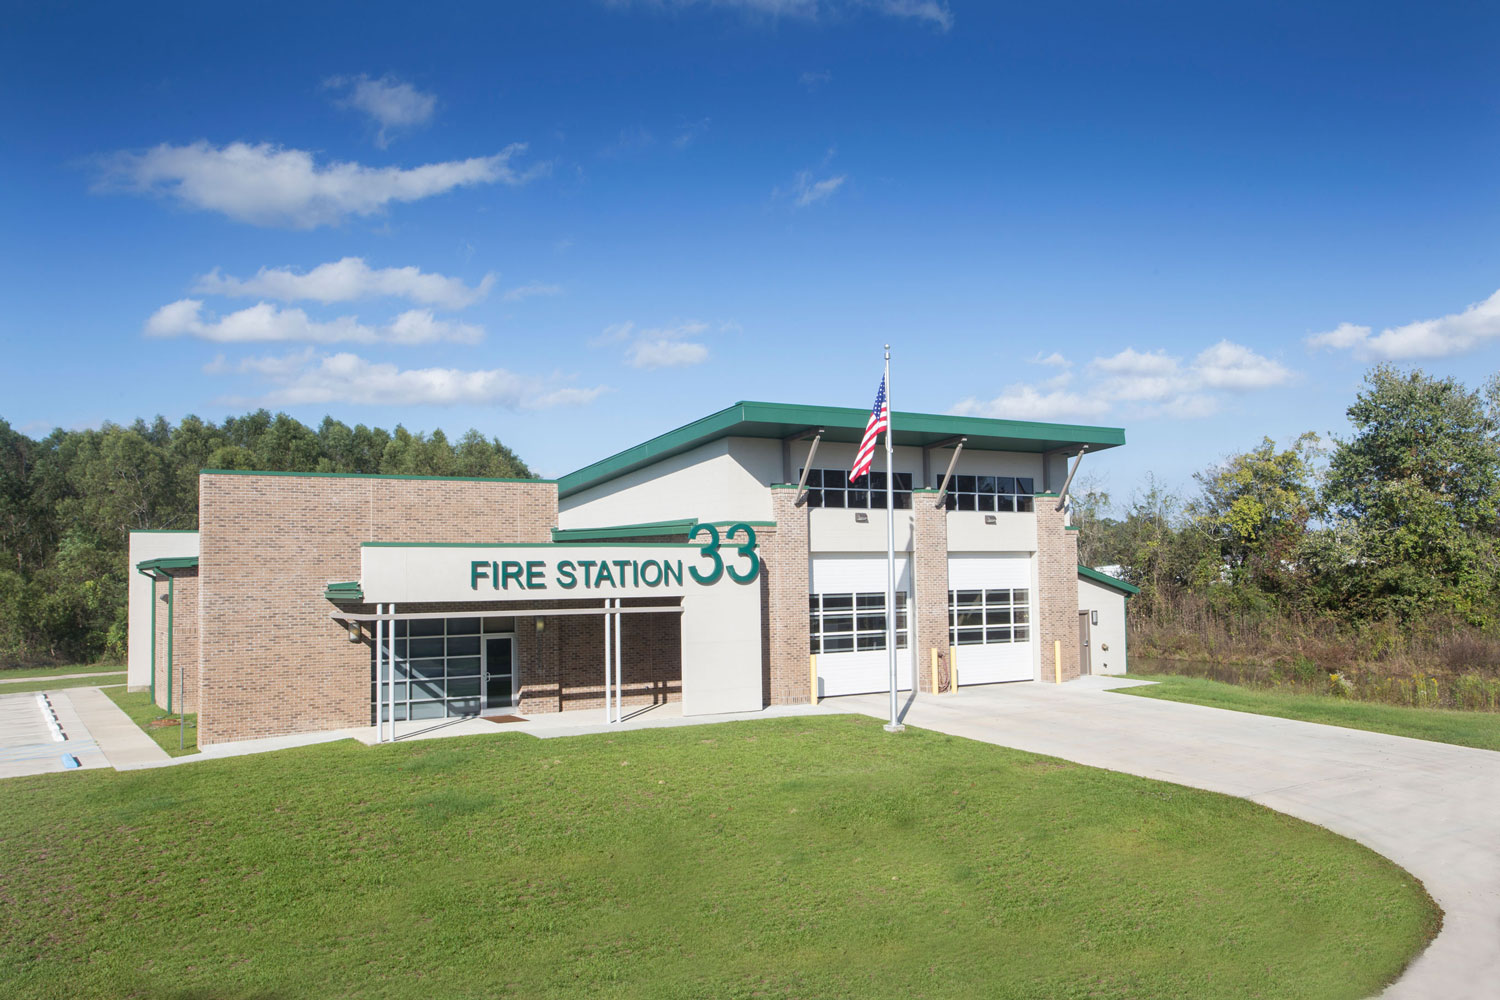 Exterior view of Fire Station 33